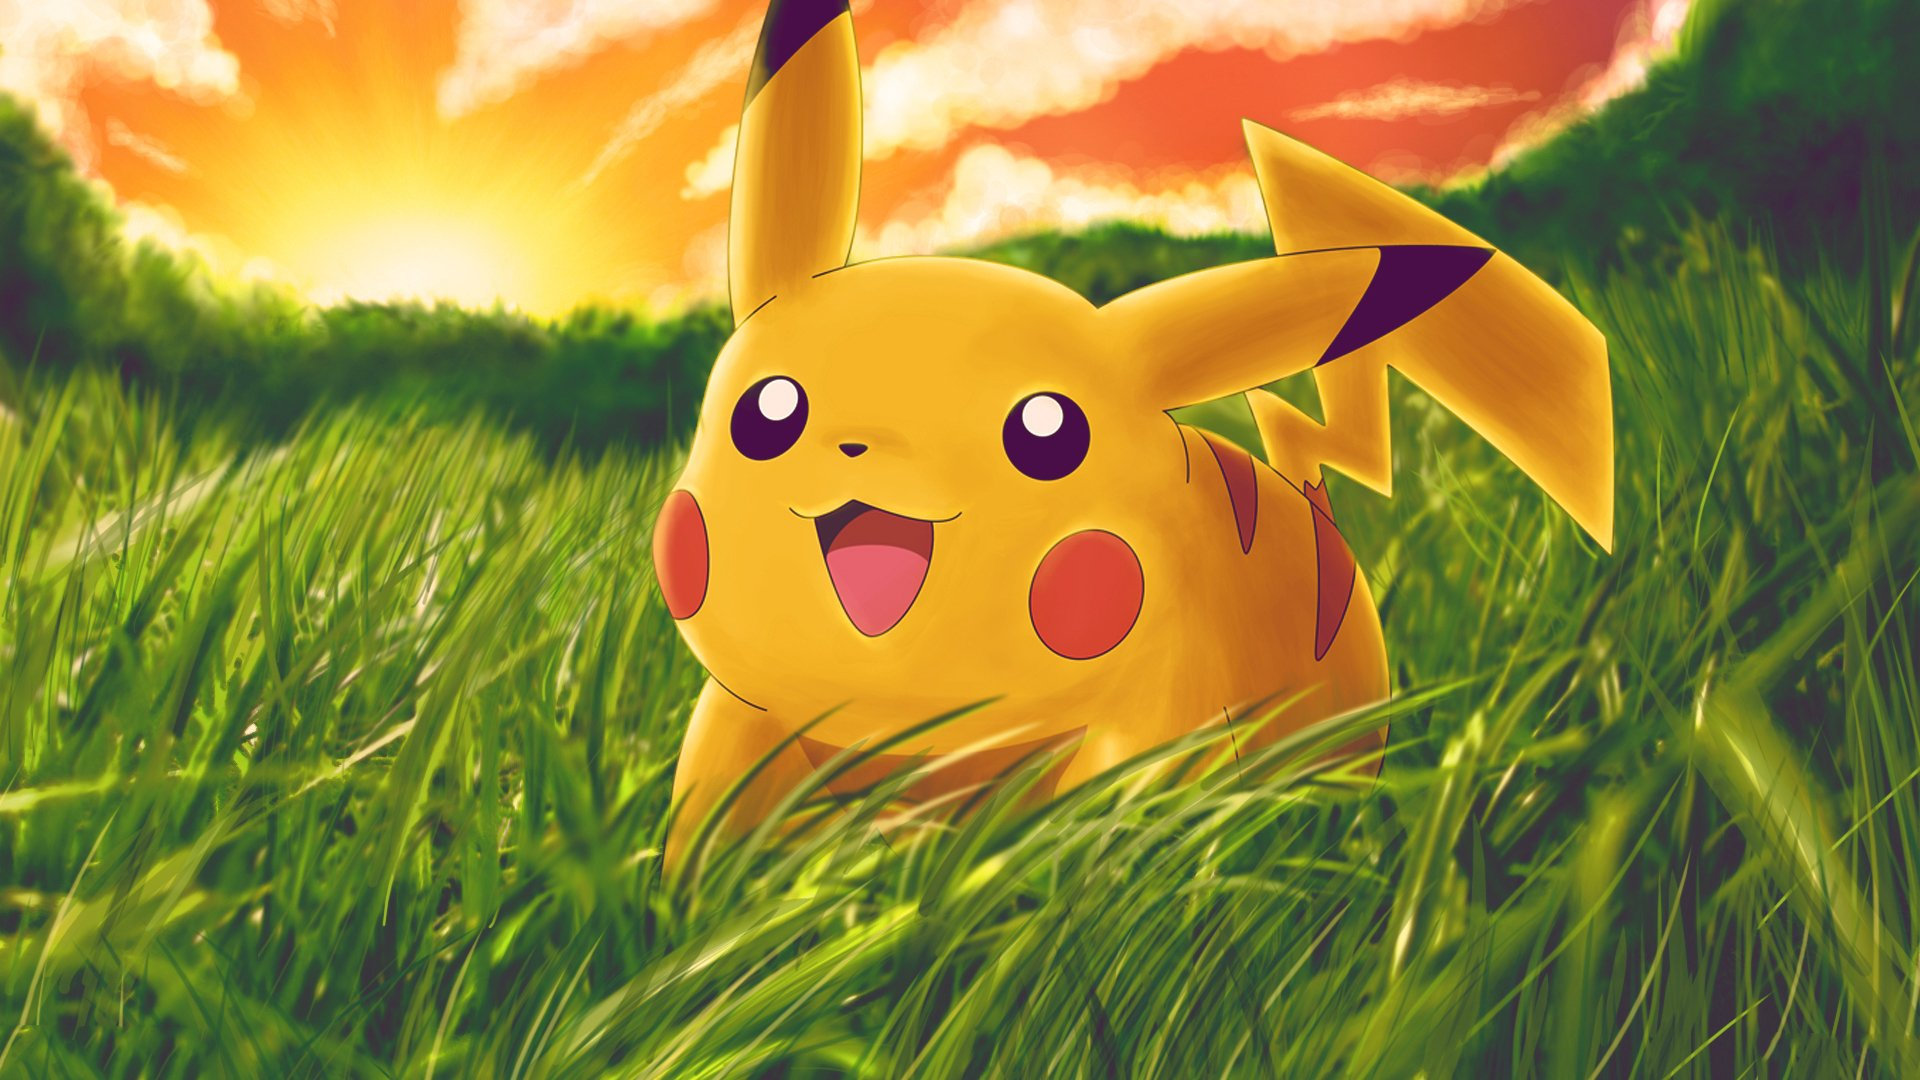 Wallpaper Pikachu